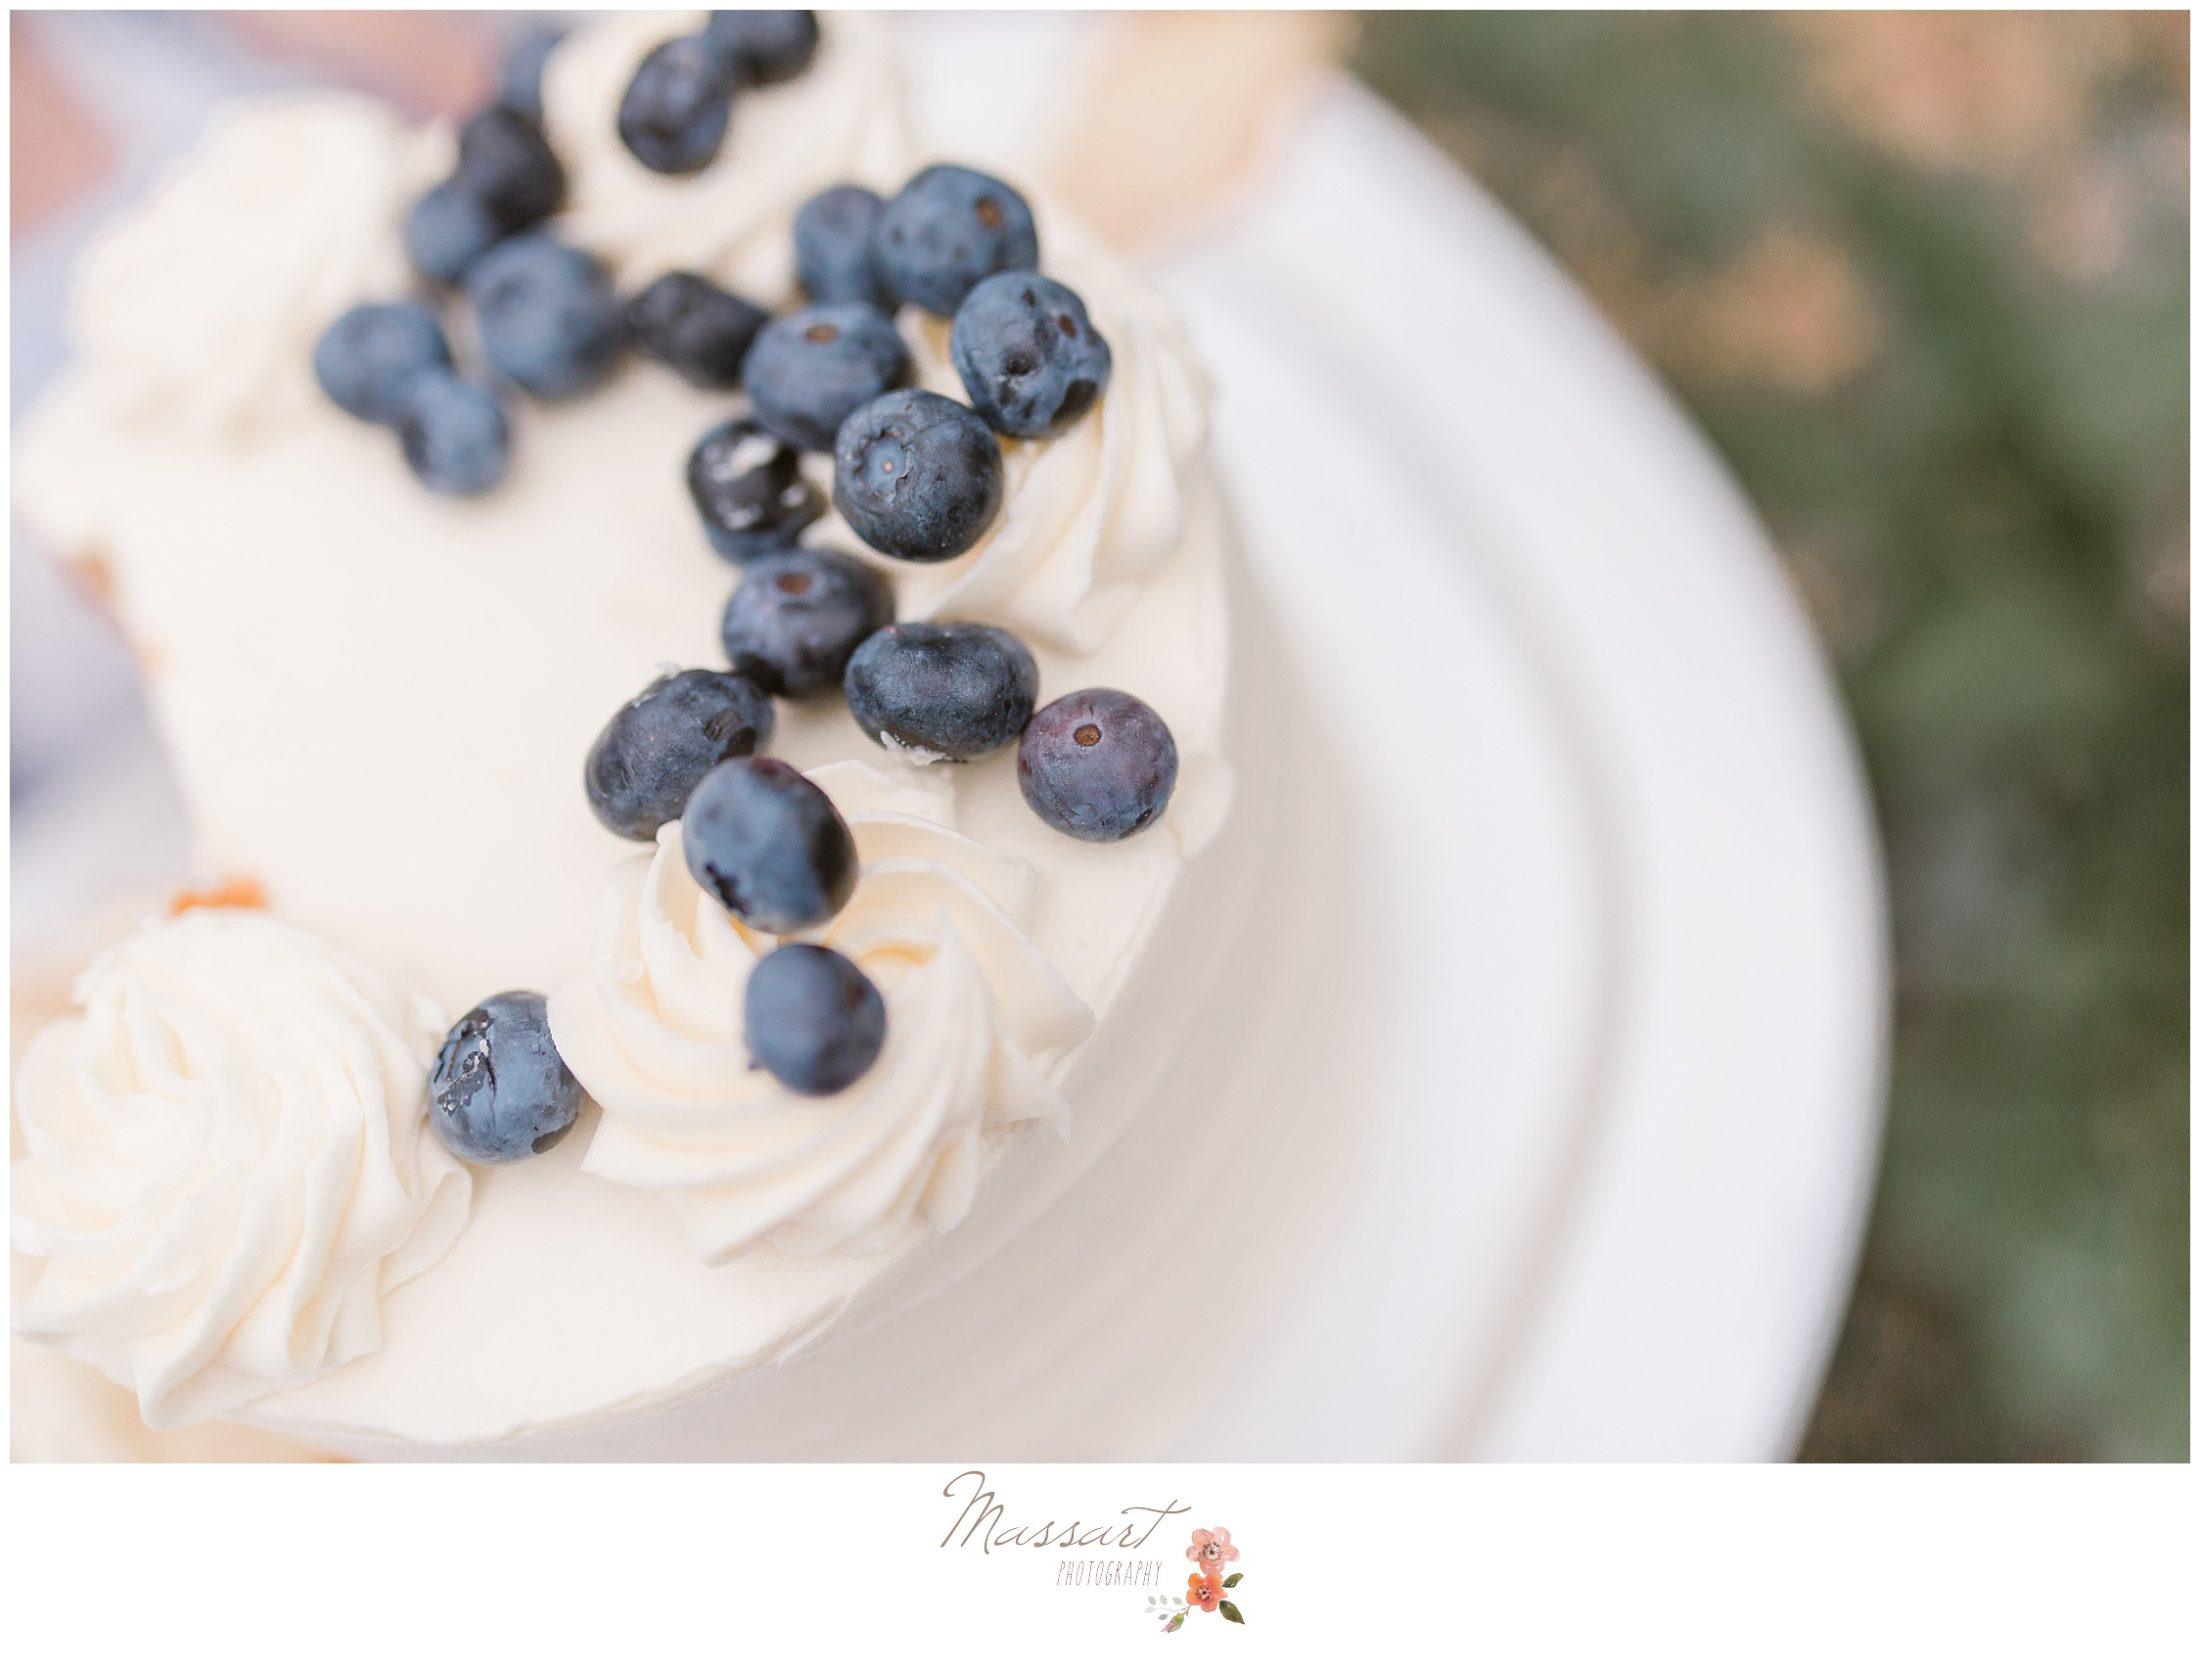 Detail portrait of the blueberry cake photographed by Massart Photography RI